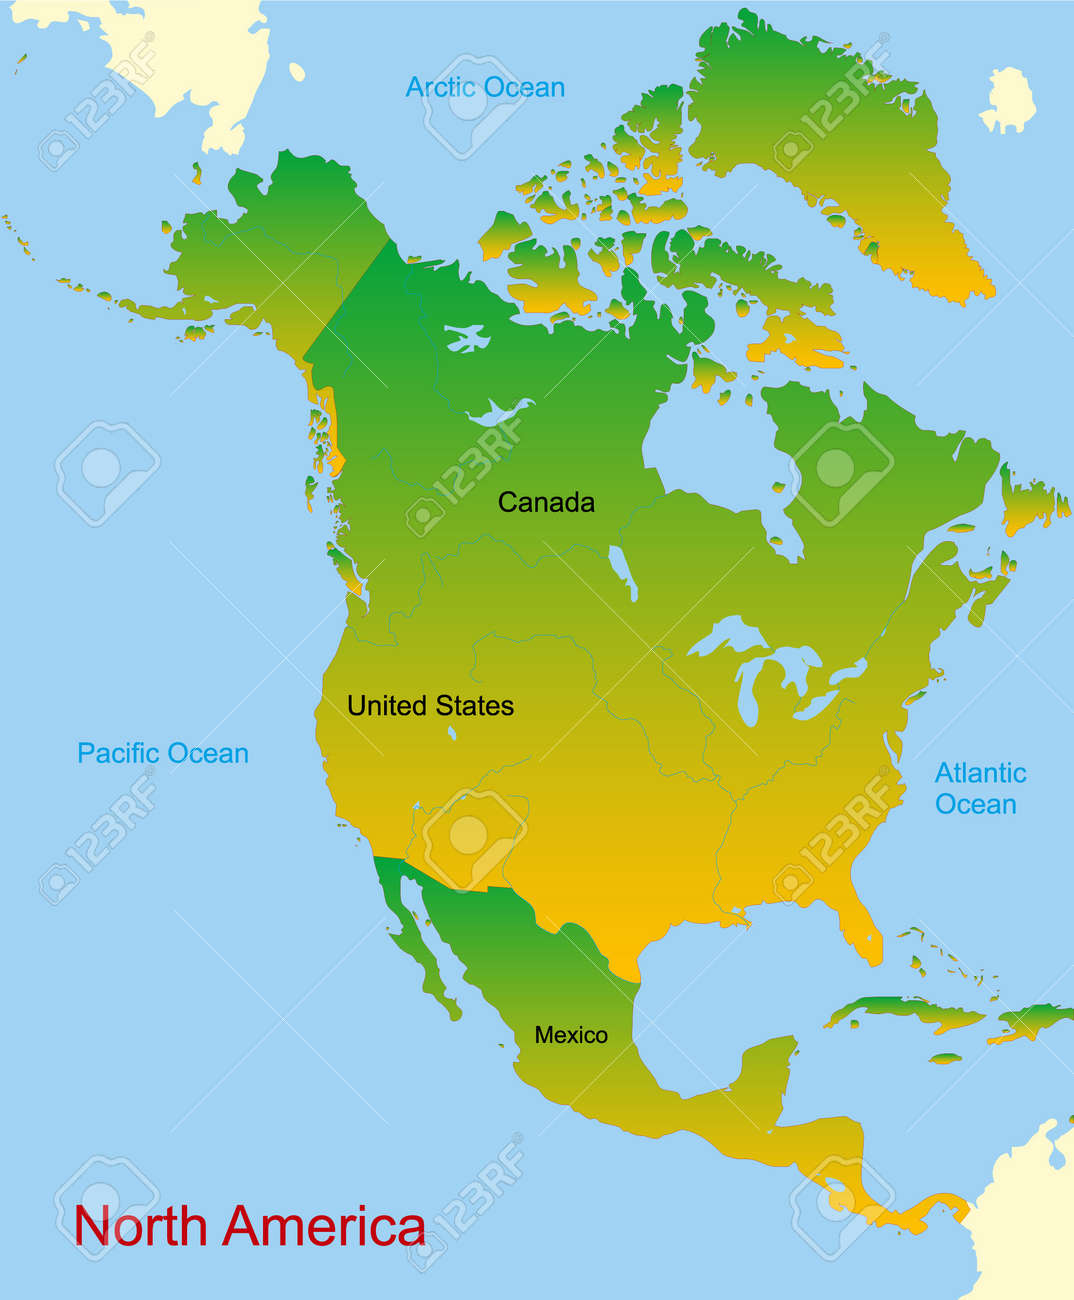 Free Vector Map Of North America.Detailed Vector Map Of North America Continent Royalty Free Cliparts